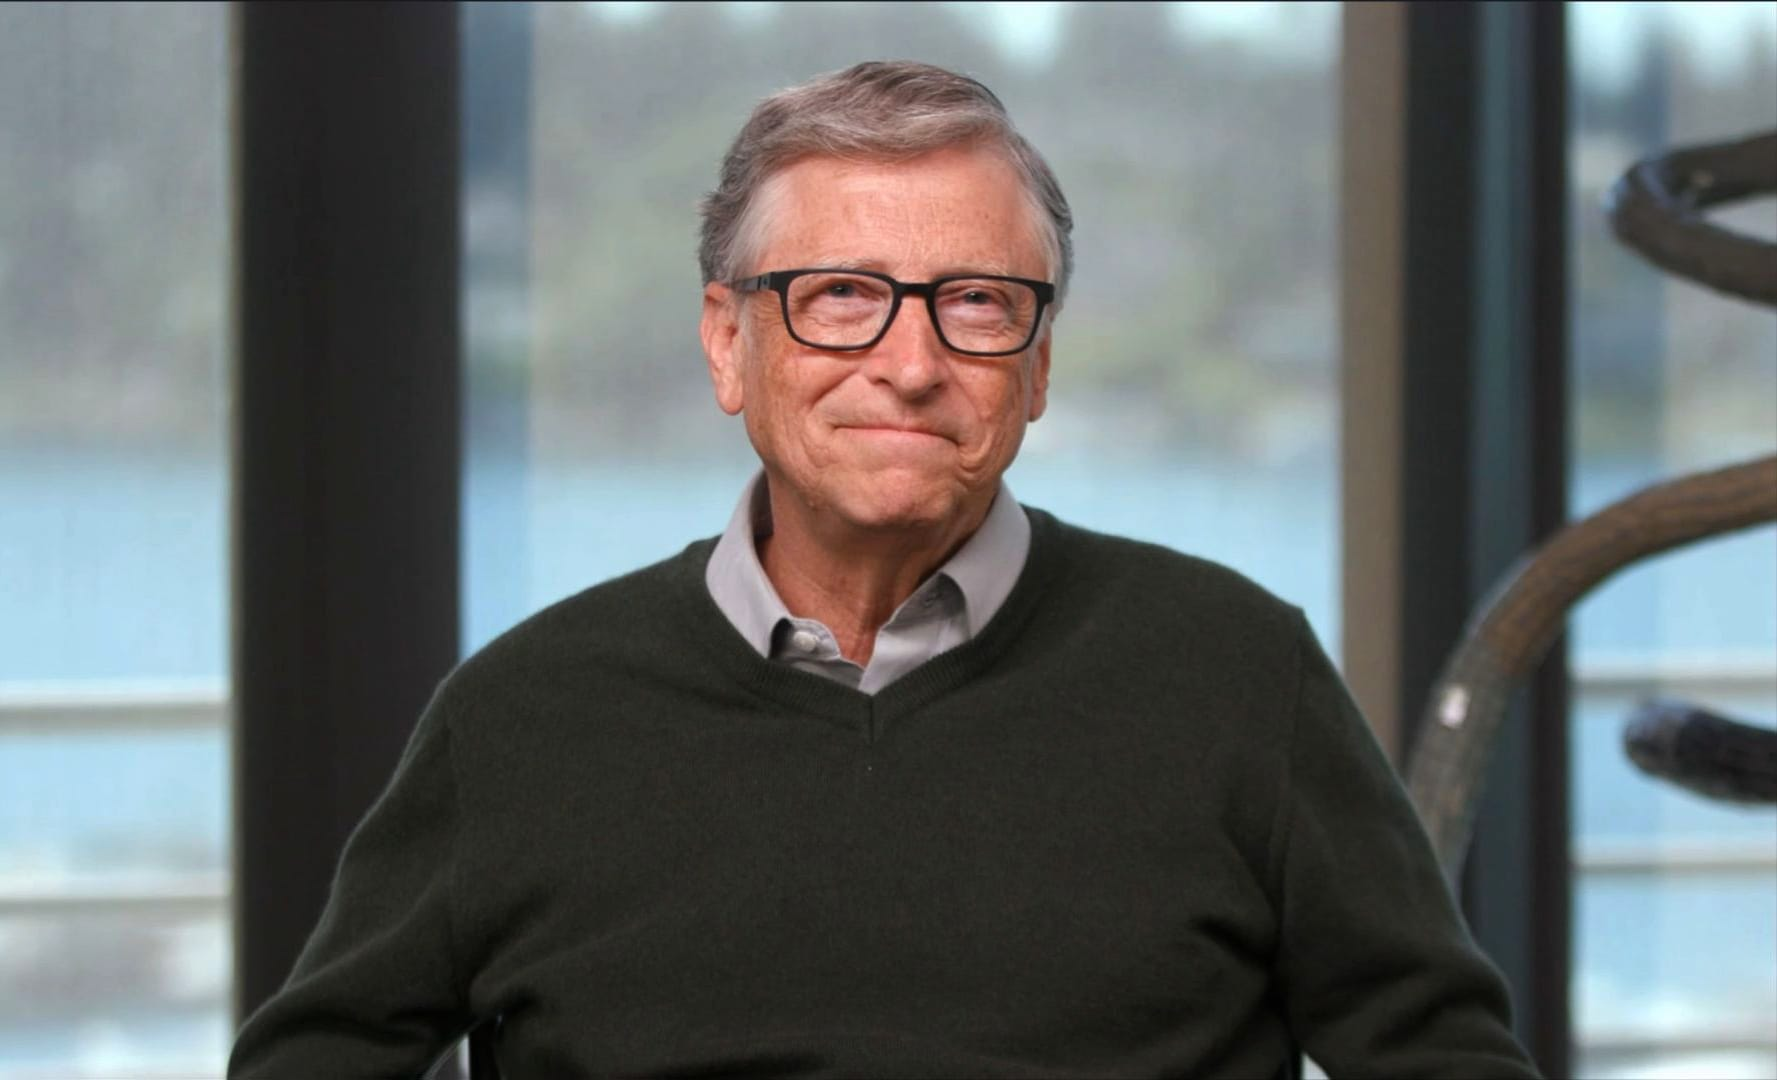 Coronavirus: Bill Gates says more than 50% of business travel will  disappear long-term